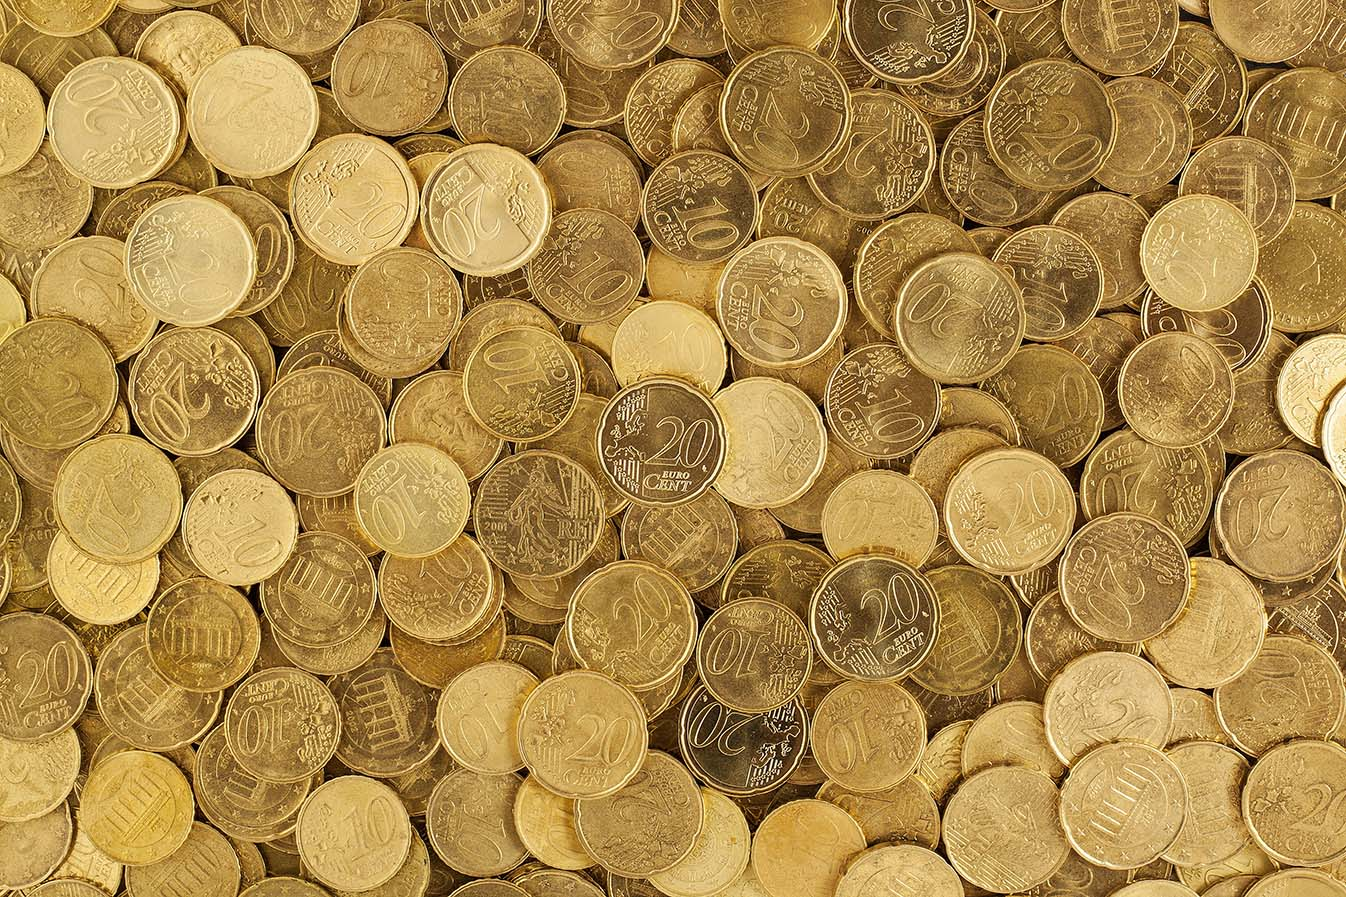 20 cent coins